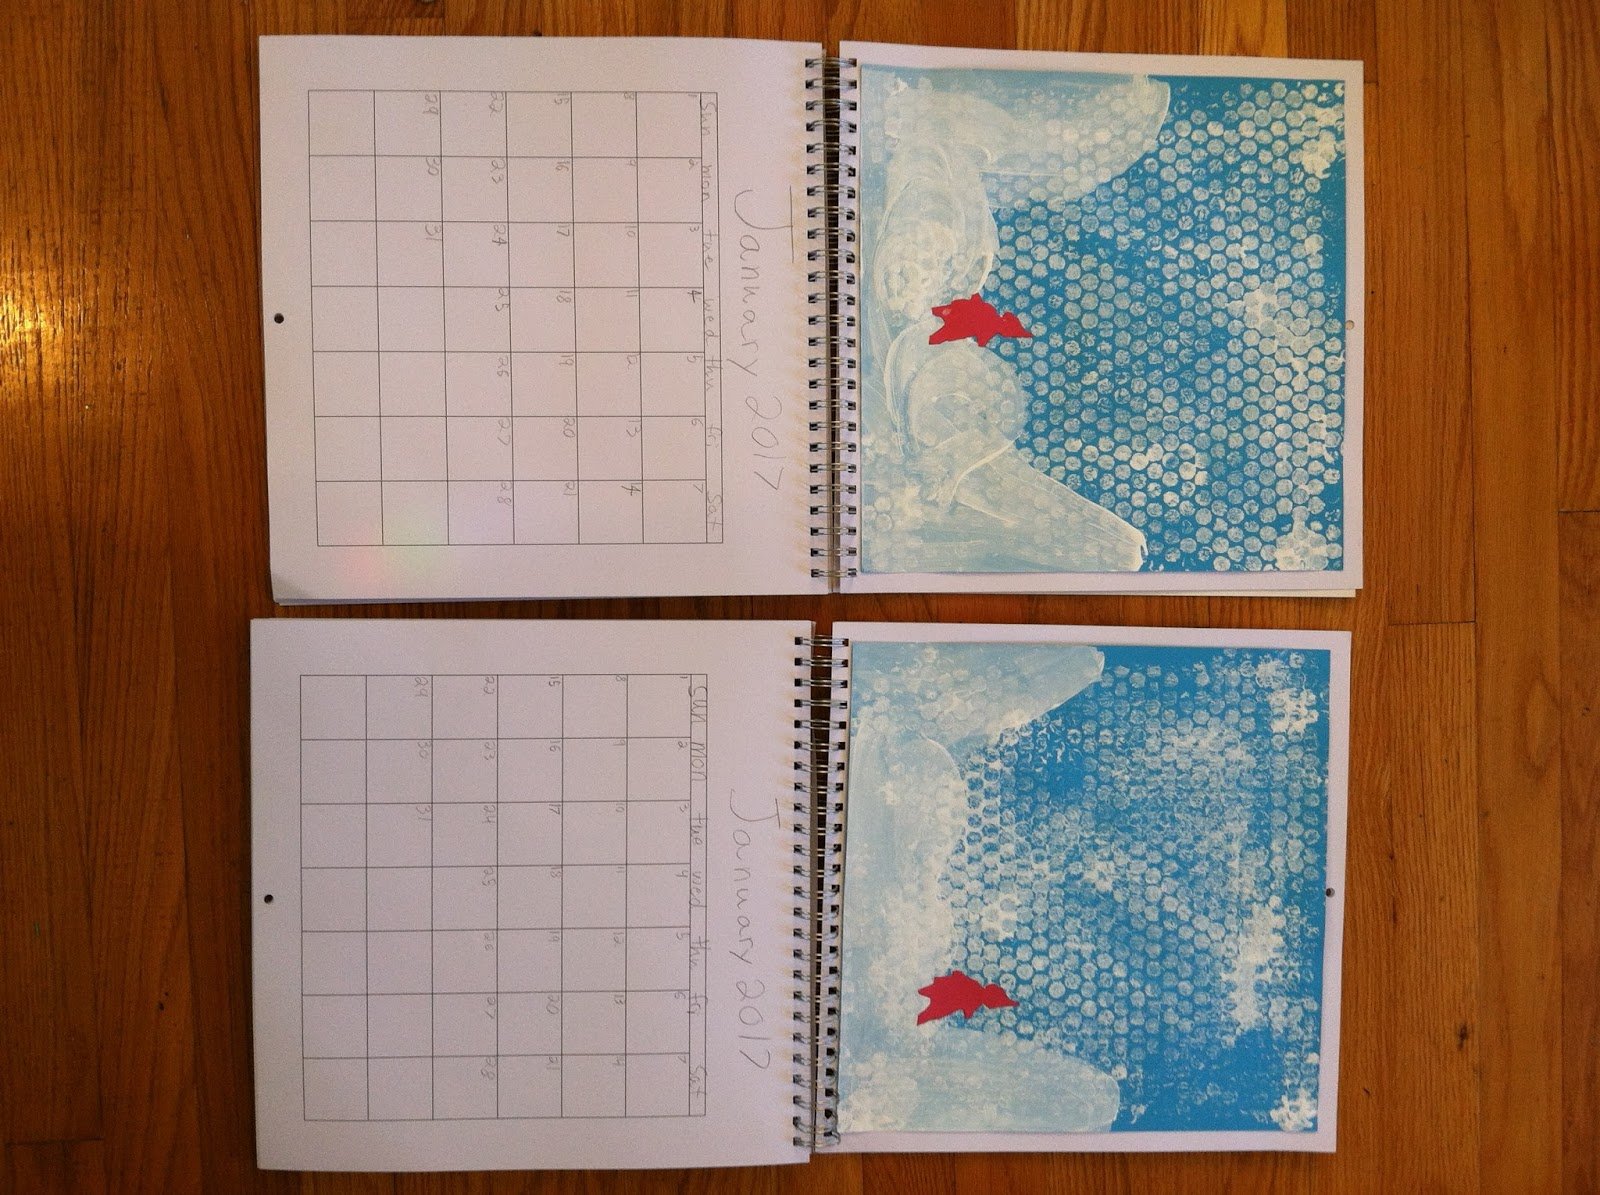 Switzerite Notes On Homemade Calendar Activity